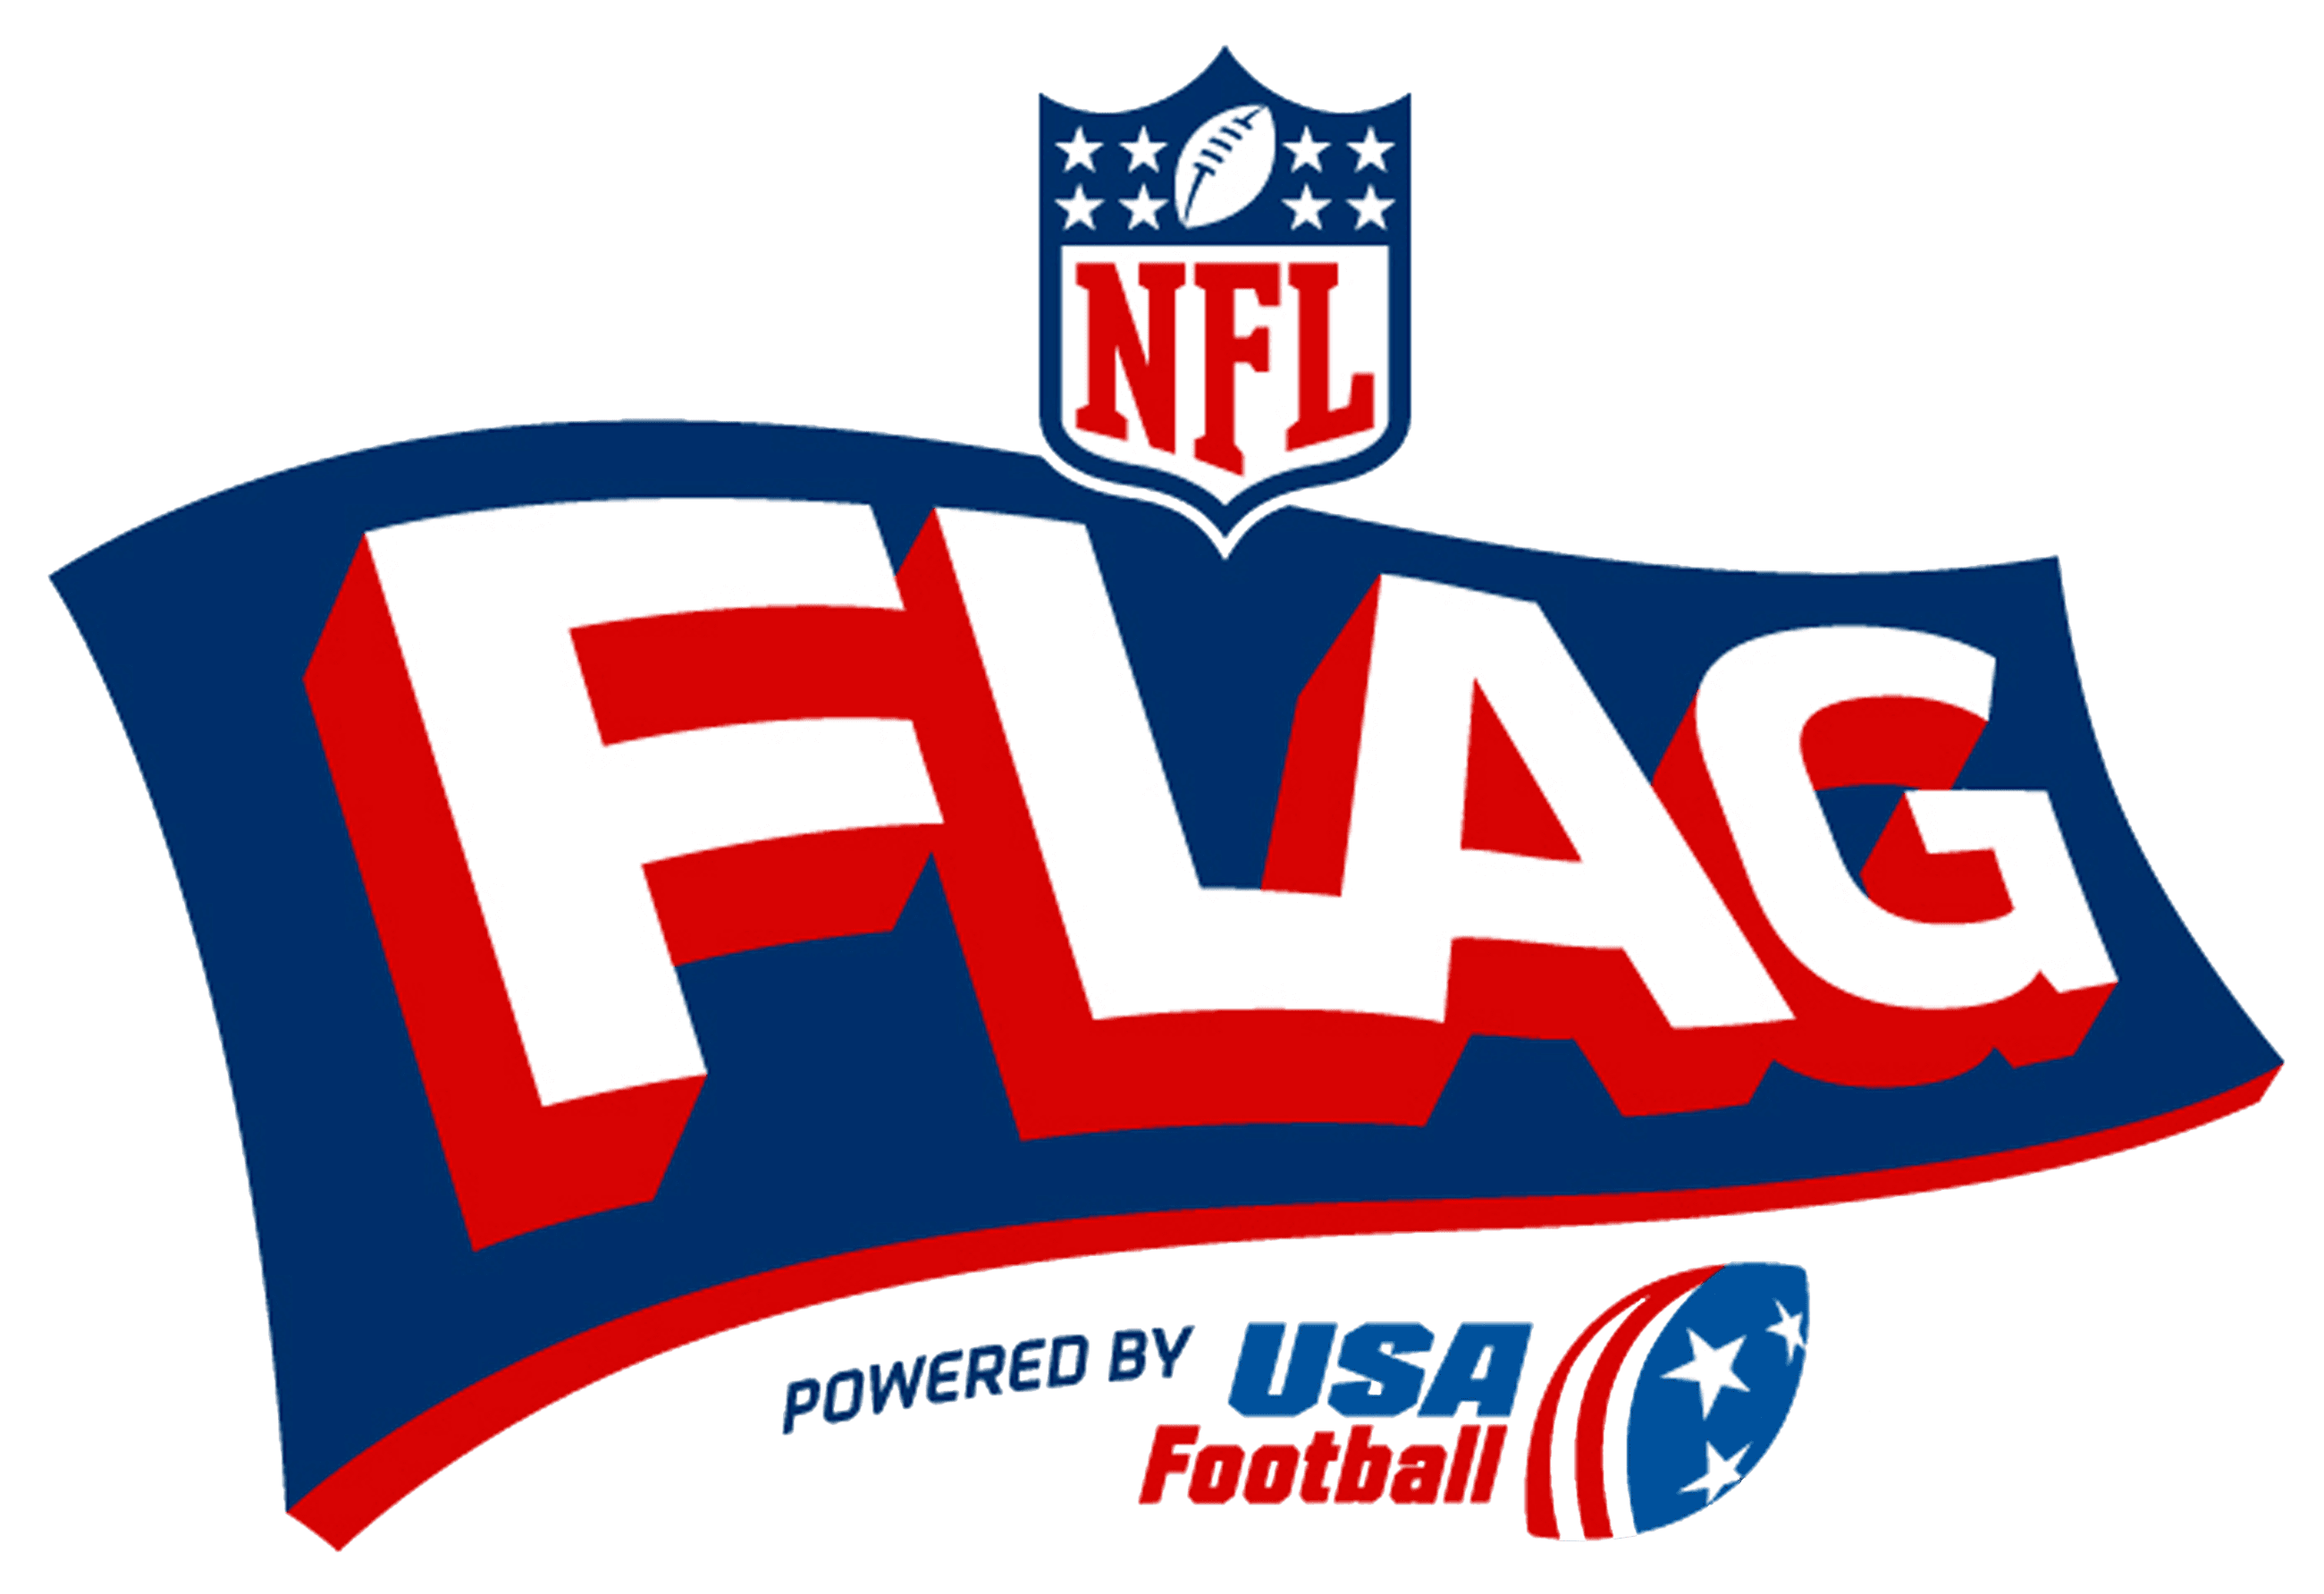 NFL_Flag_Logo_Main_Final